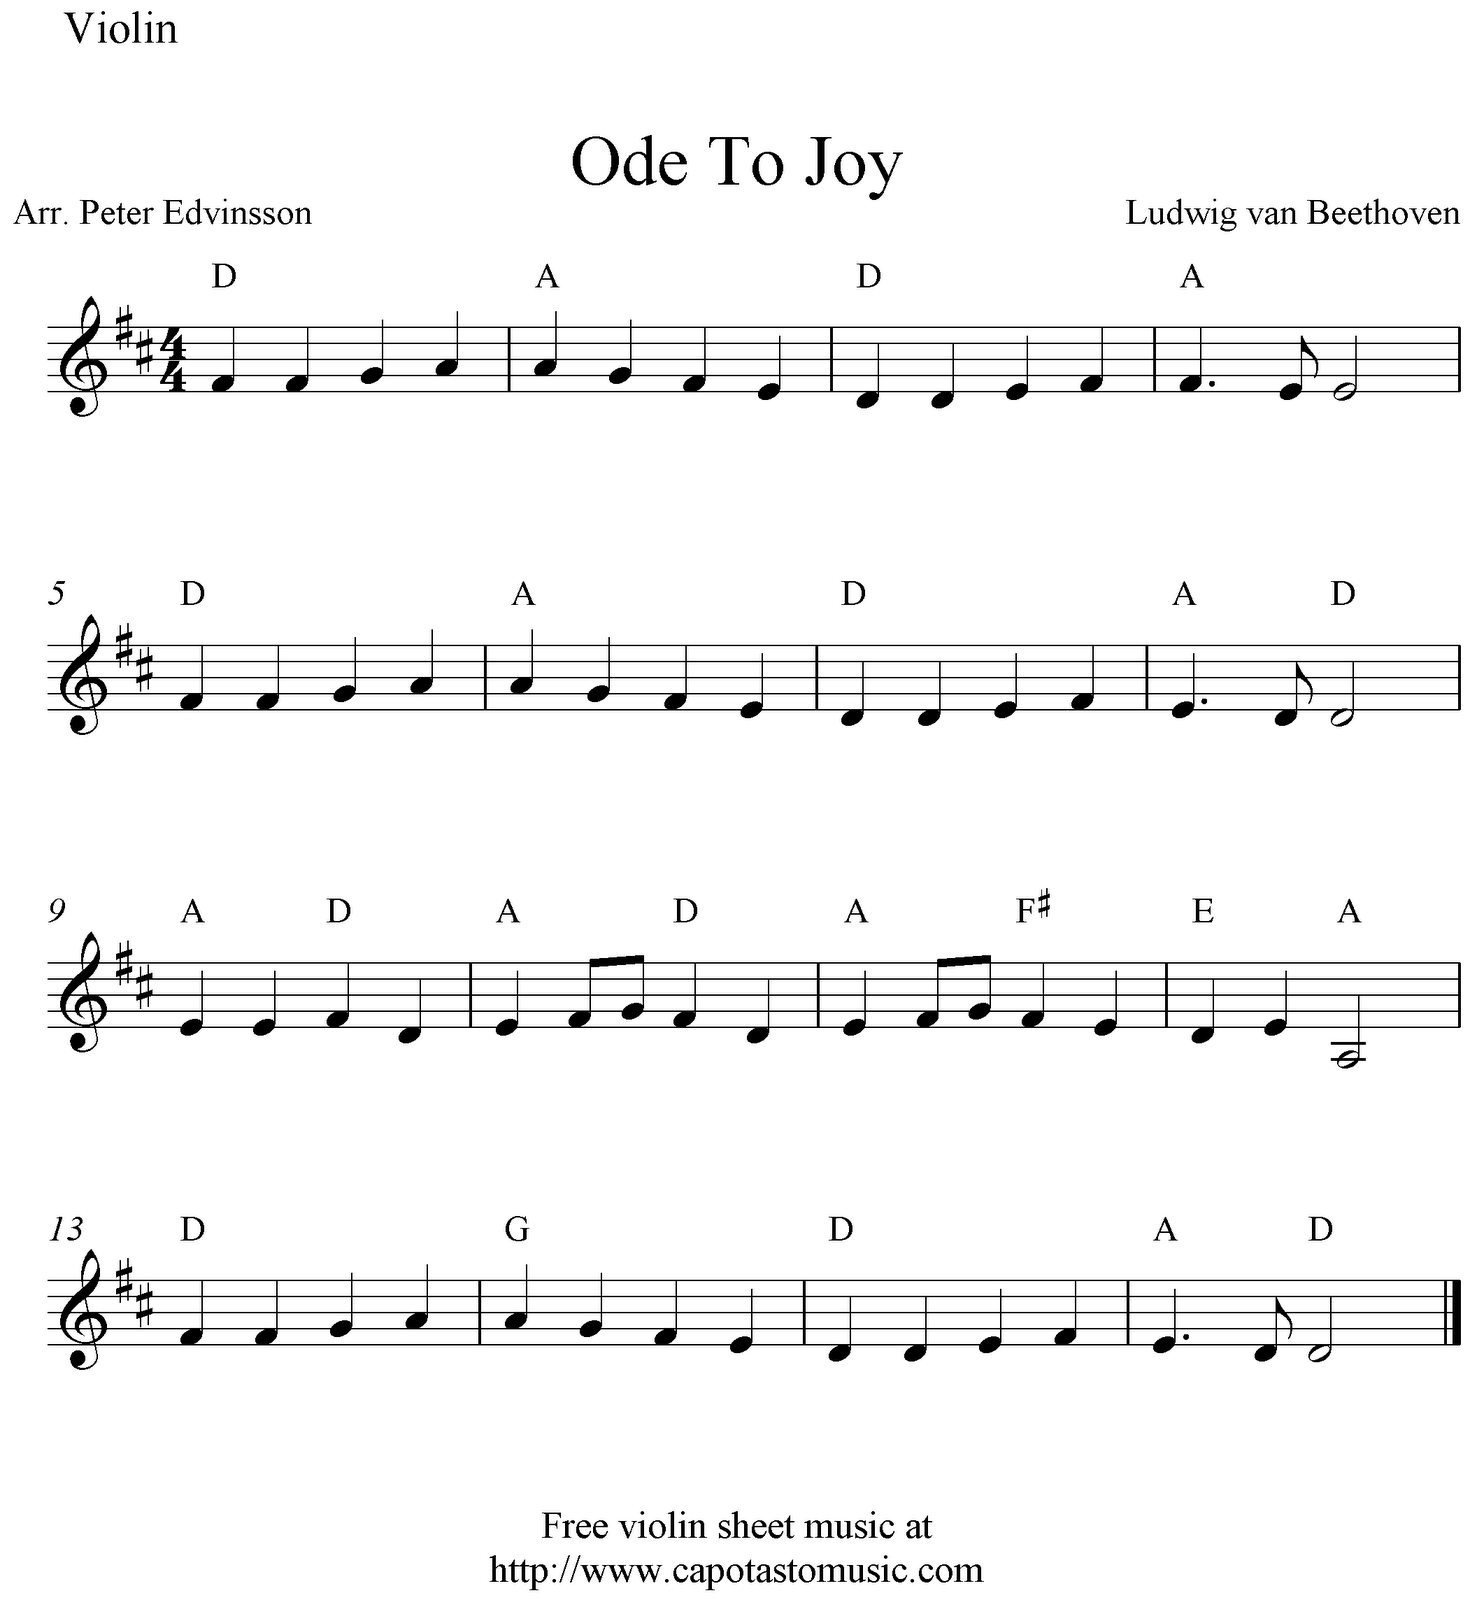 Ode To Joy, Free Easy Violin Sheet Music Notes